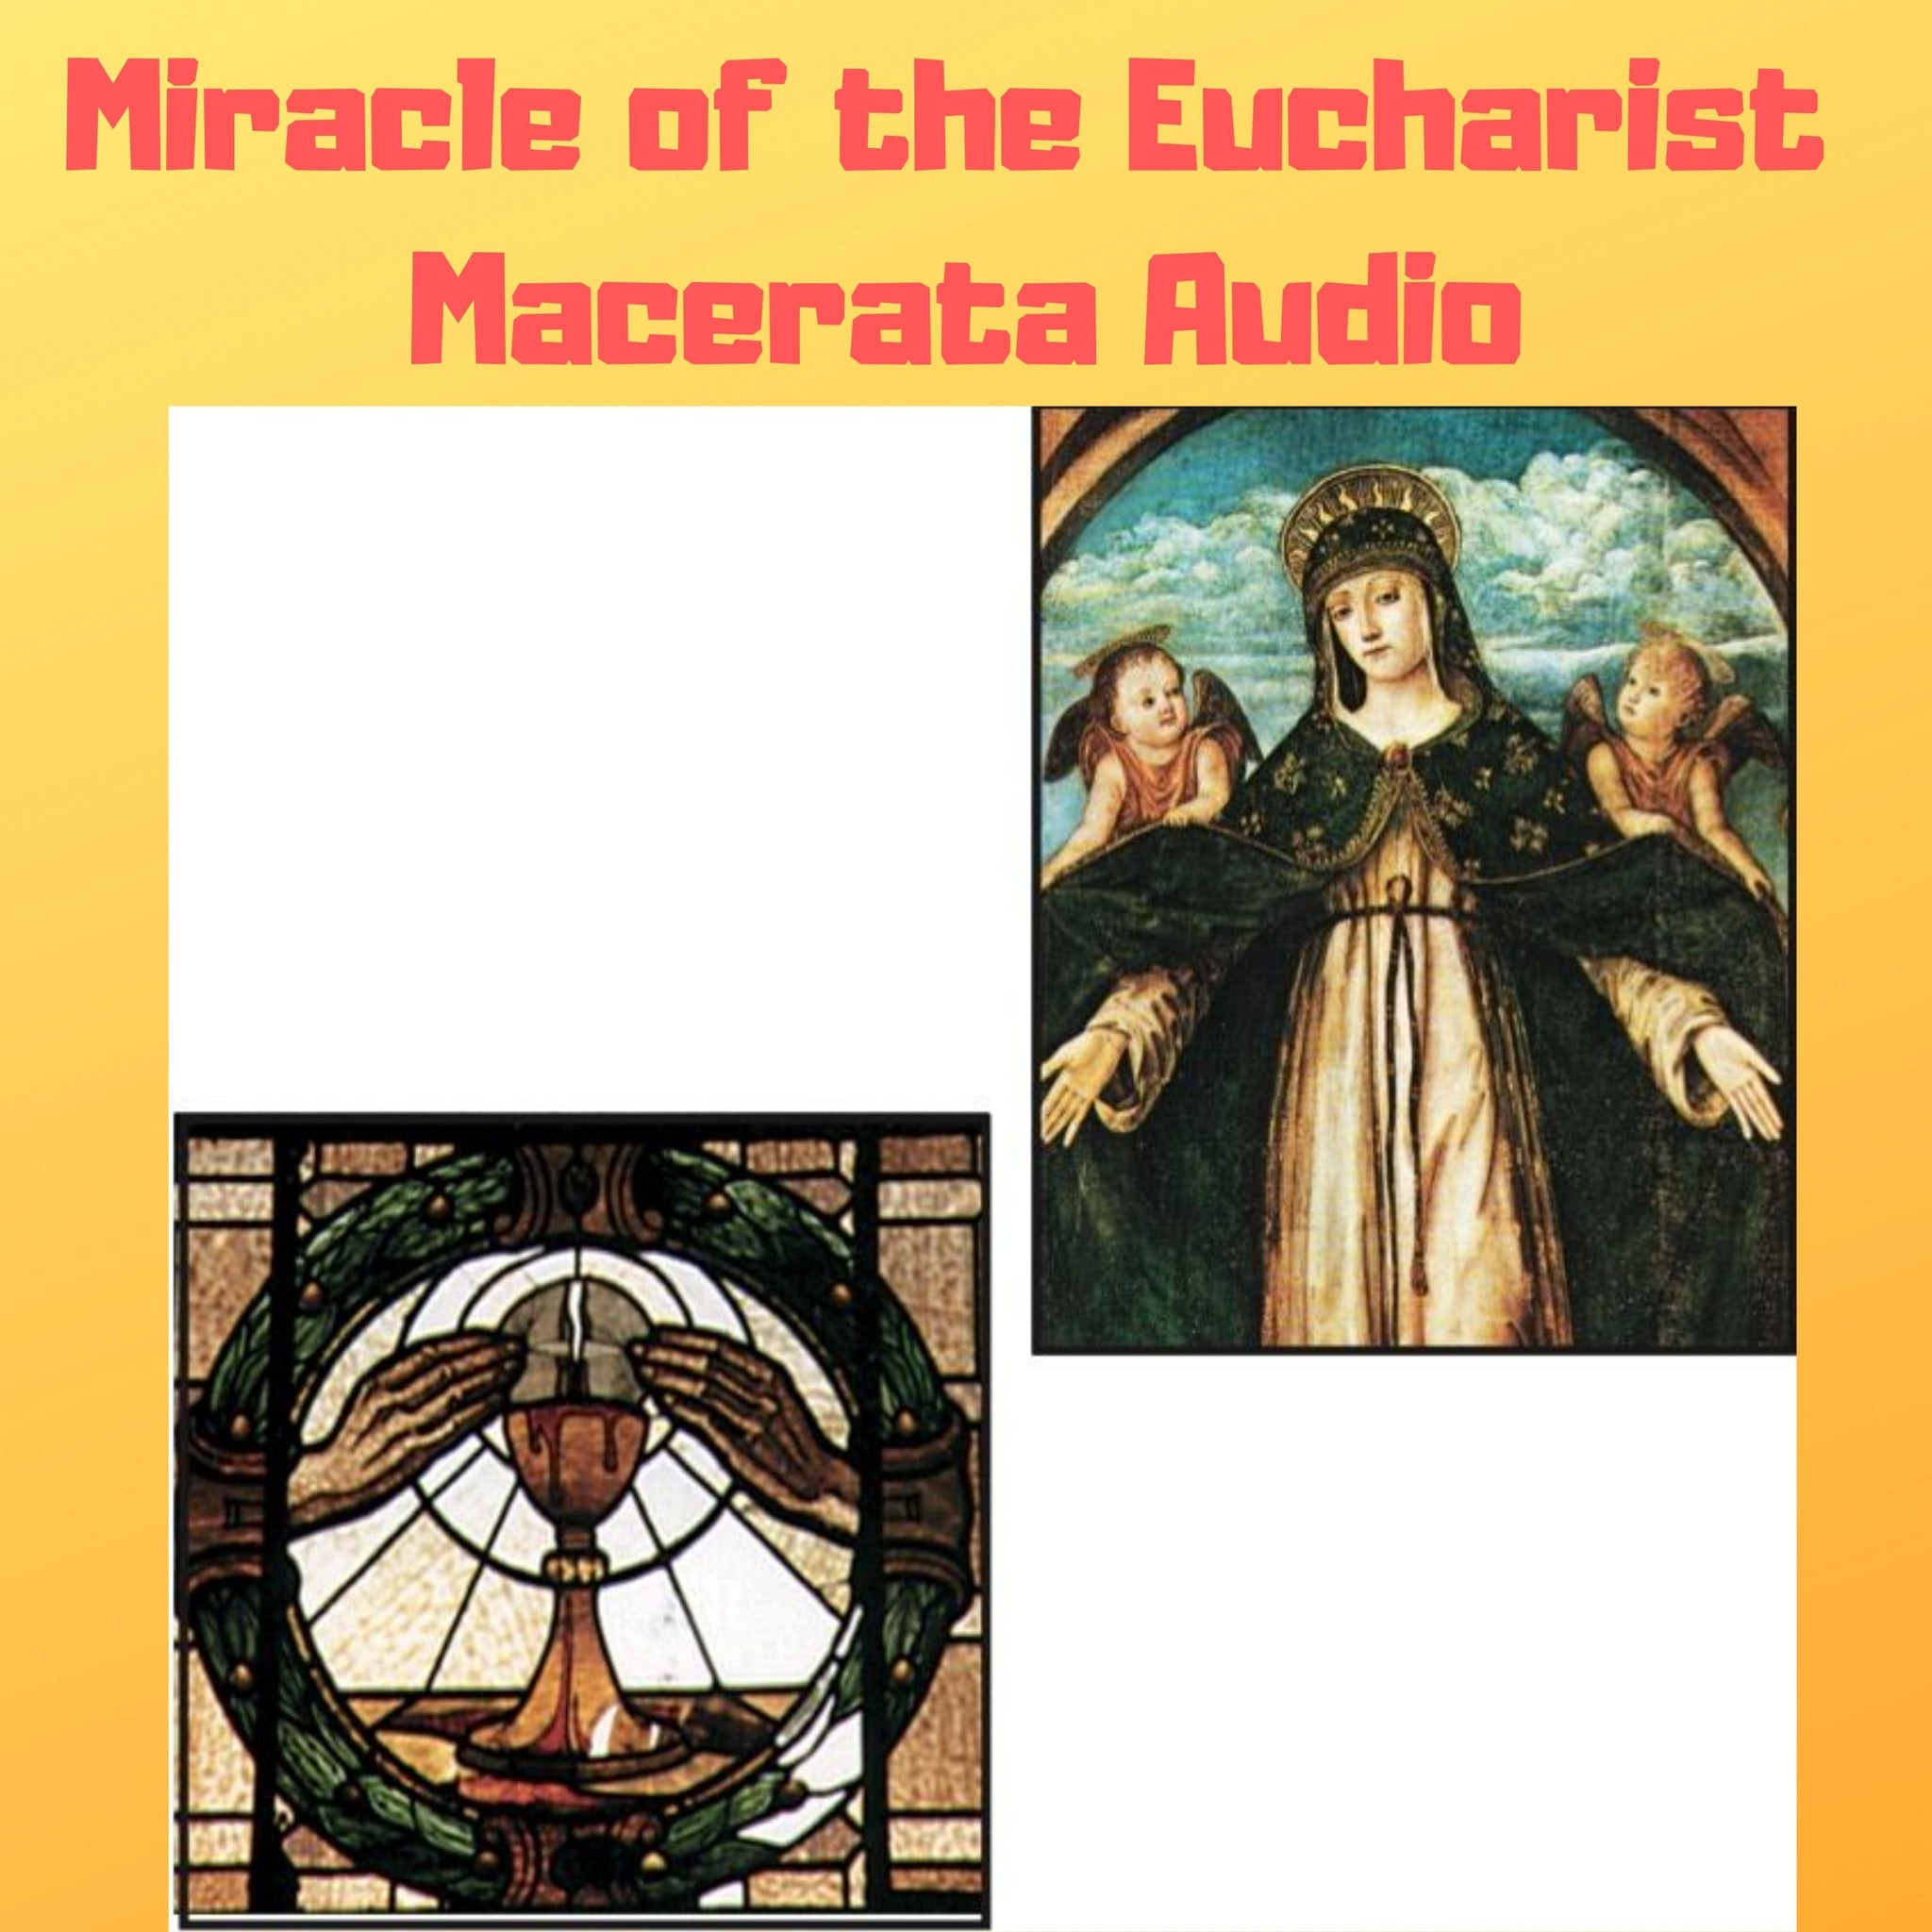 Miracle of the Eucharist of Macerata Audiobook - Bob and Penny Lord